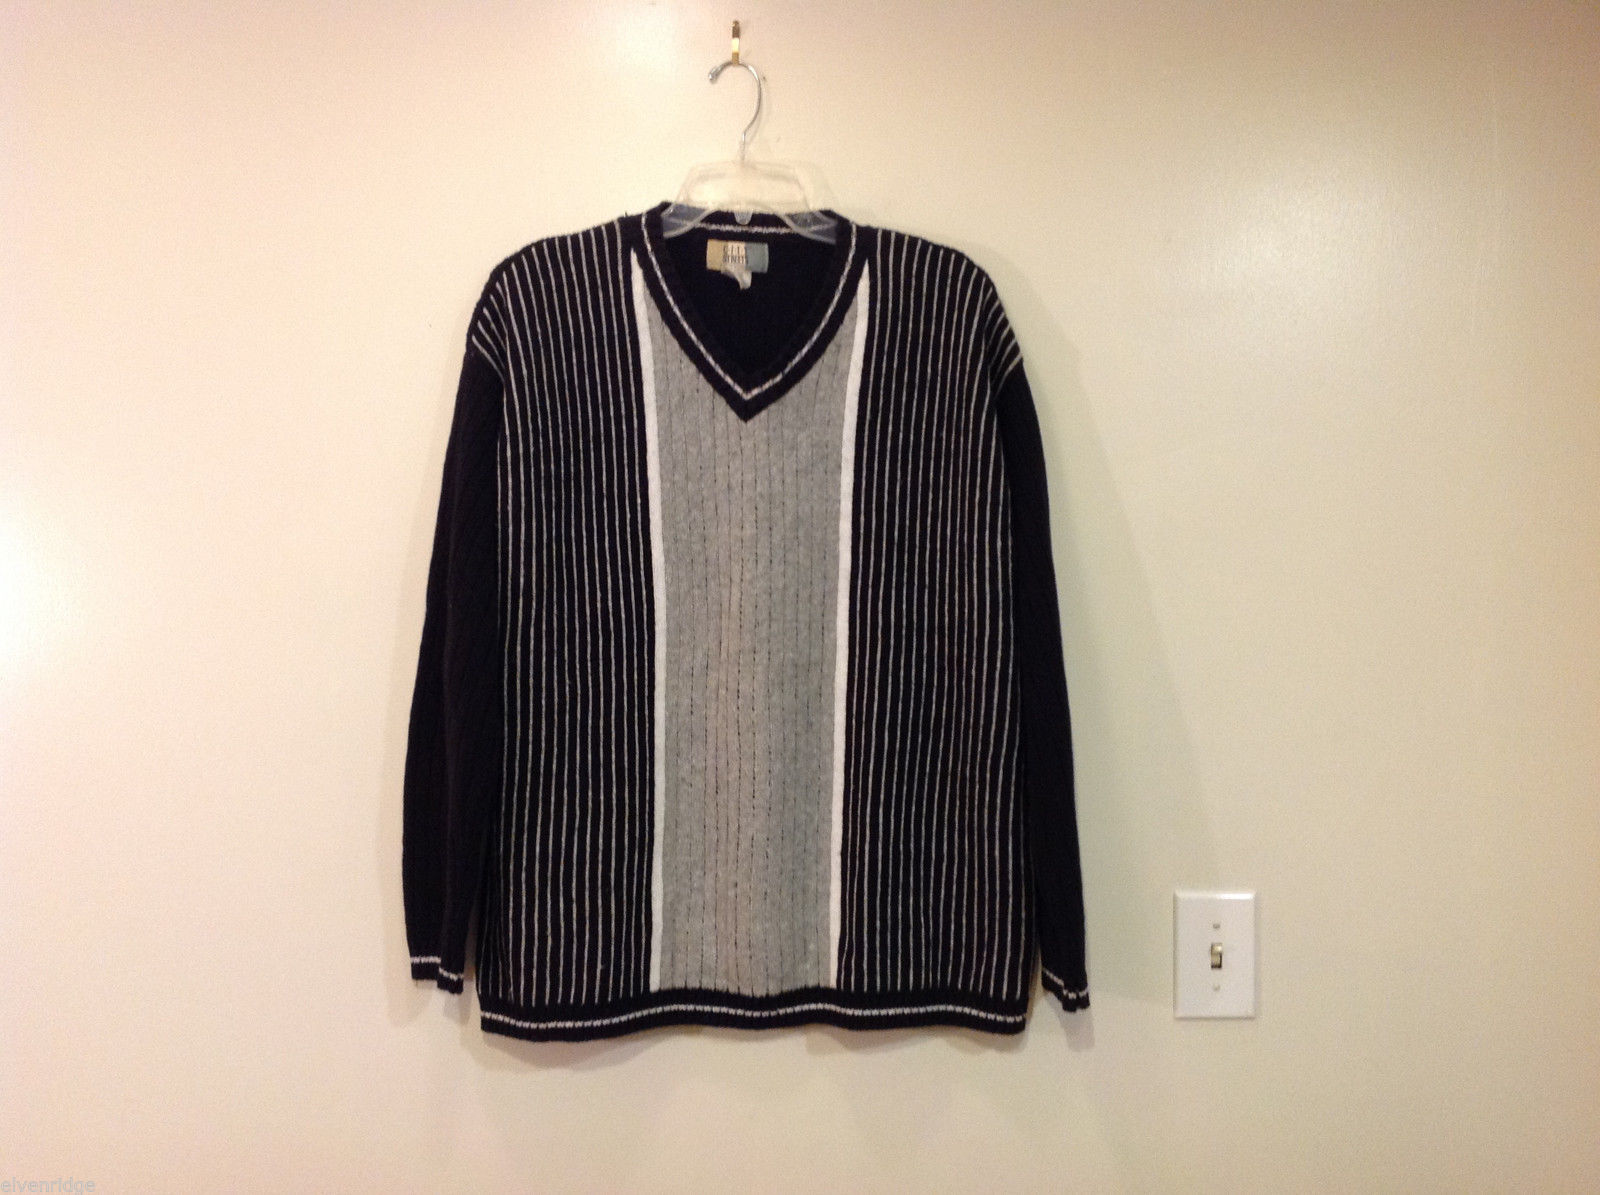 CITY Streets Black Gray Stripes Long V-Neck Sweater, size XXL